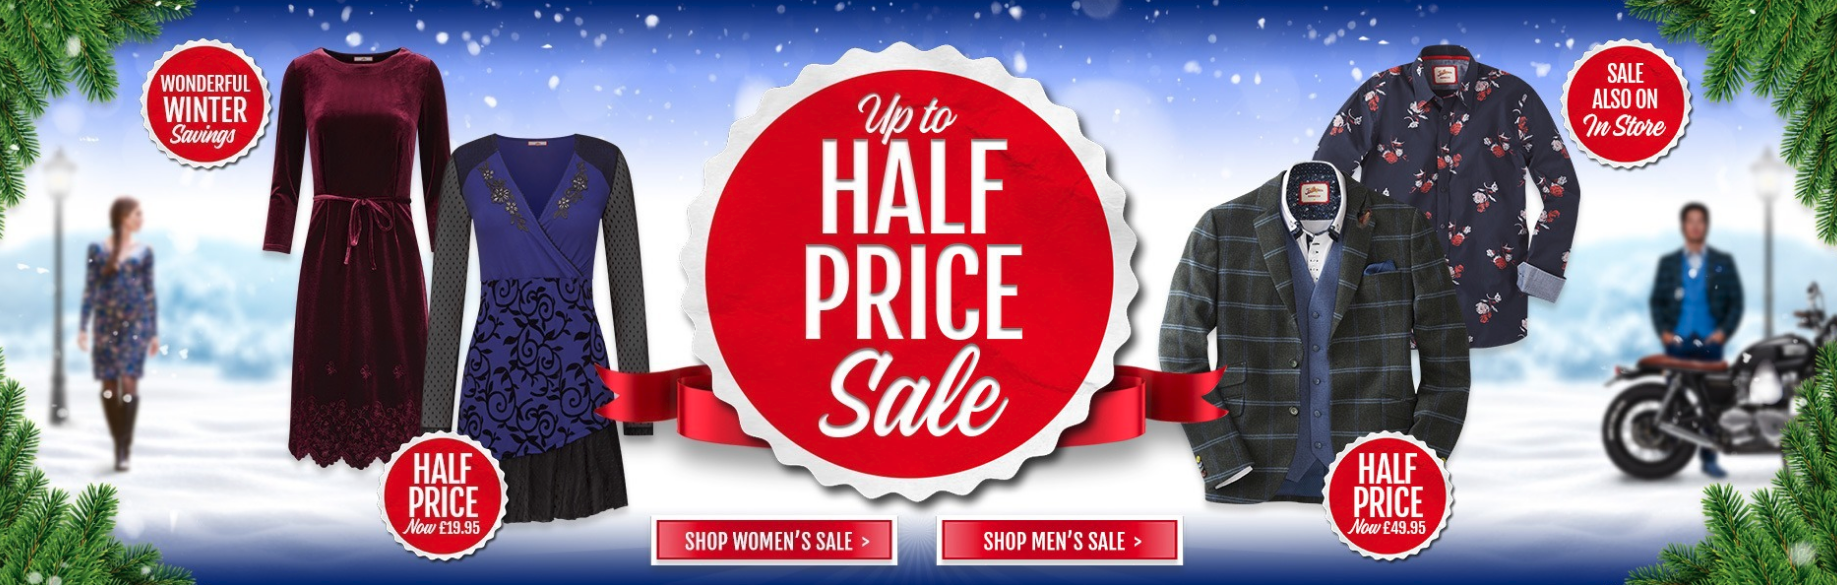 Joe Browns Joe Browns: Sale up to 50% off clothes, shoes and accessories